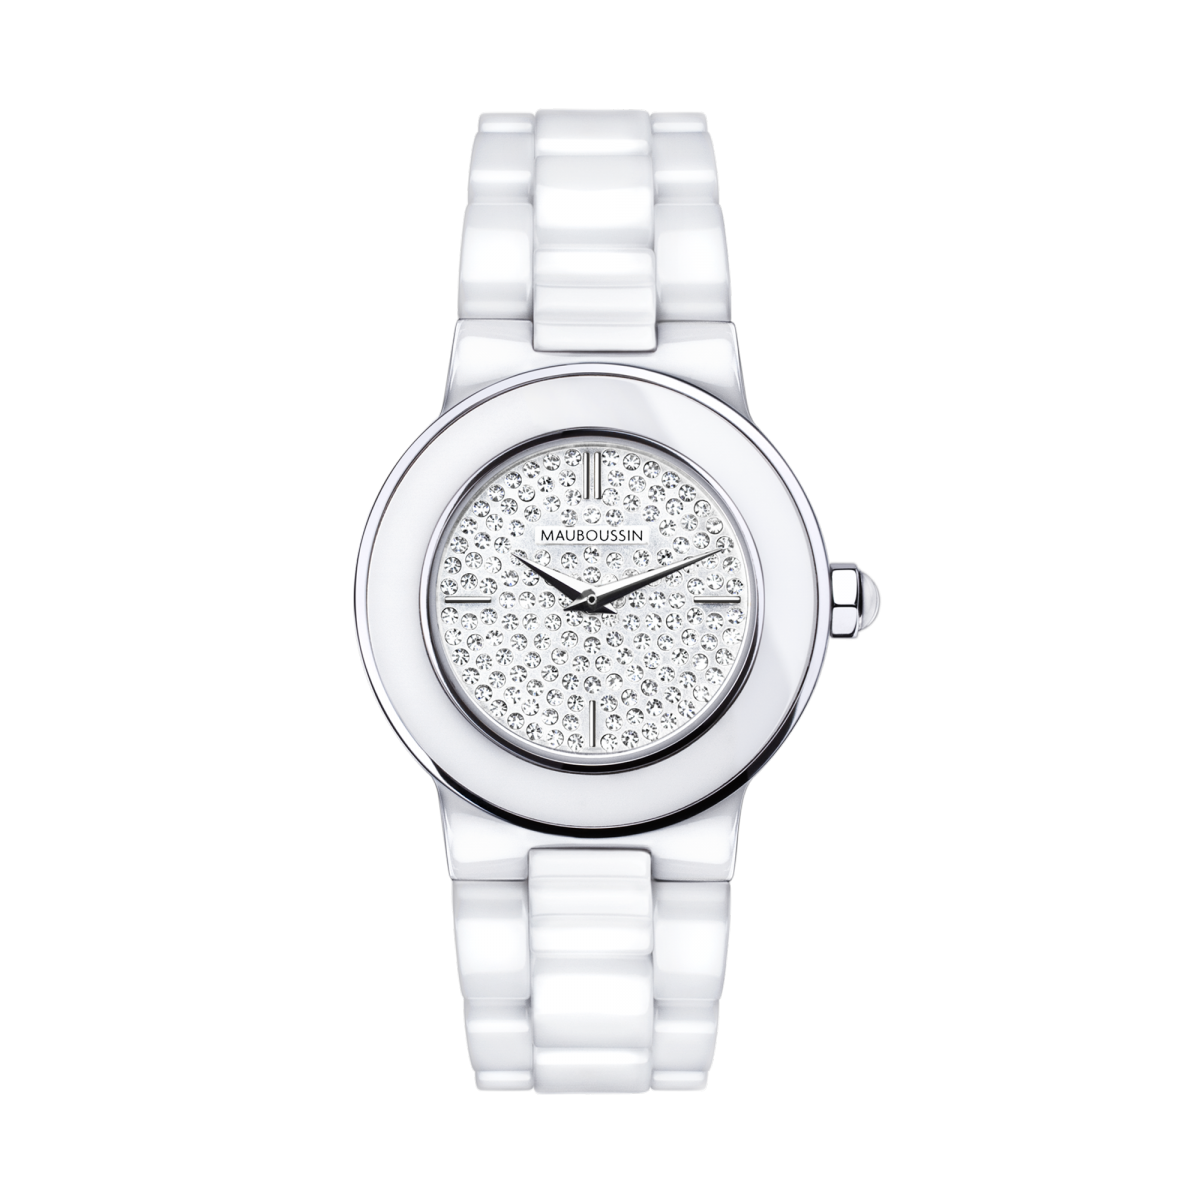 montre-mauboussin-amour-le-jour-bracelet-ceramique-blanche-full-pavage-diamants-n16